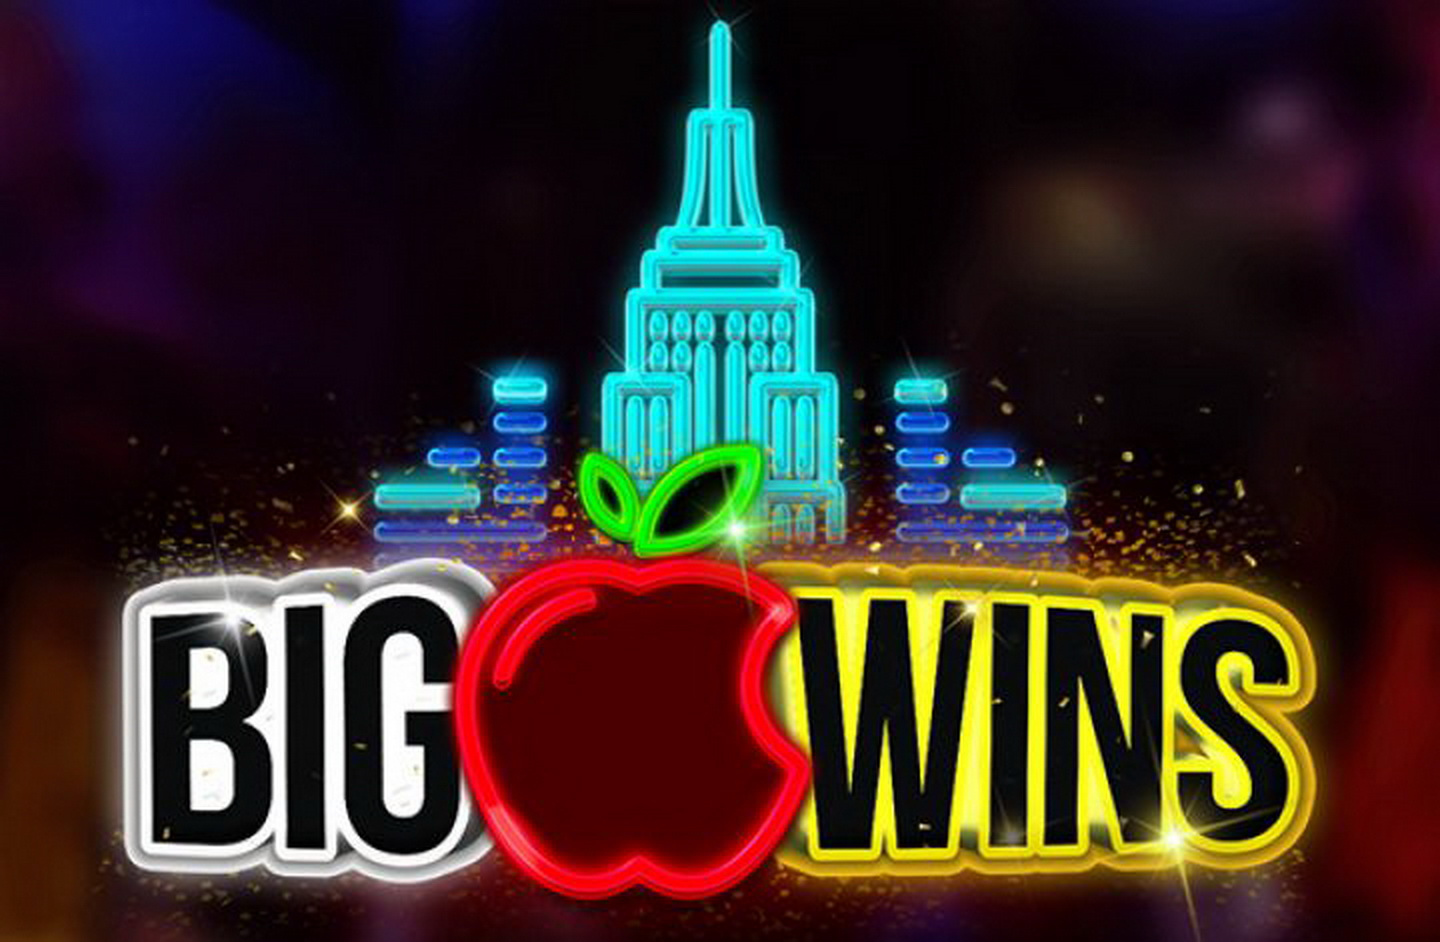 The Big Apple Wins Online Slot Demo Game by Booming Games